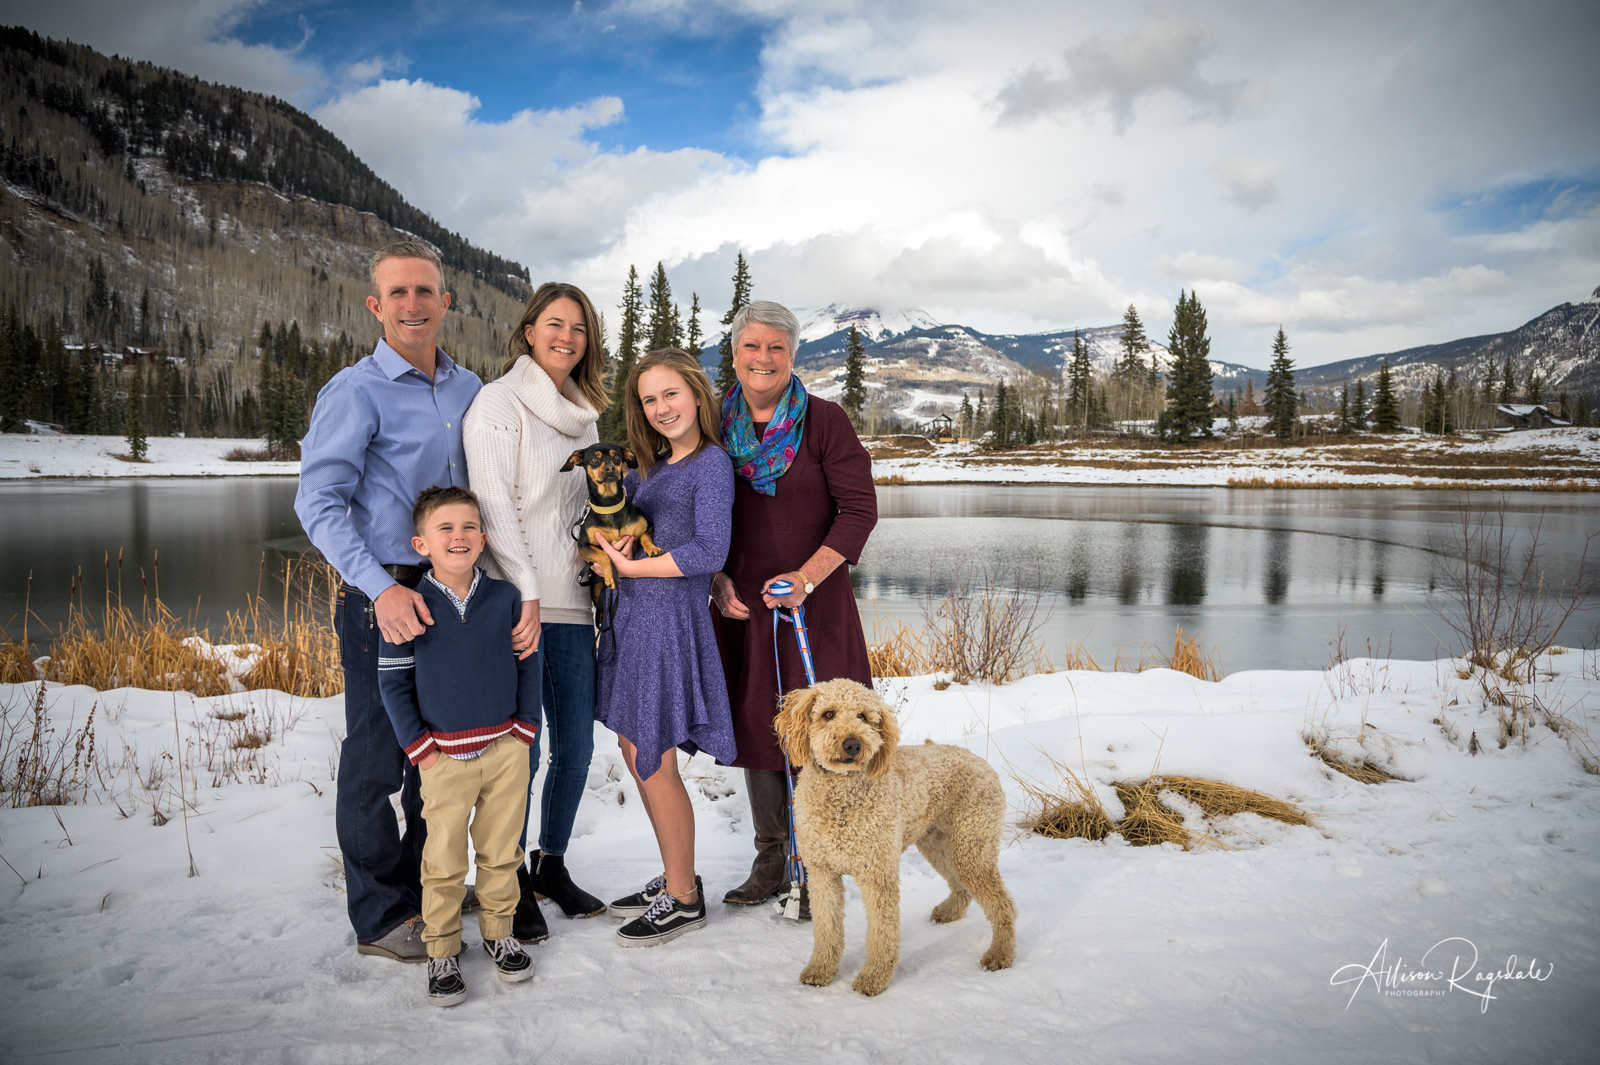 Cute winter family photos in Colorado